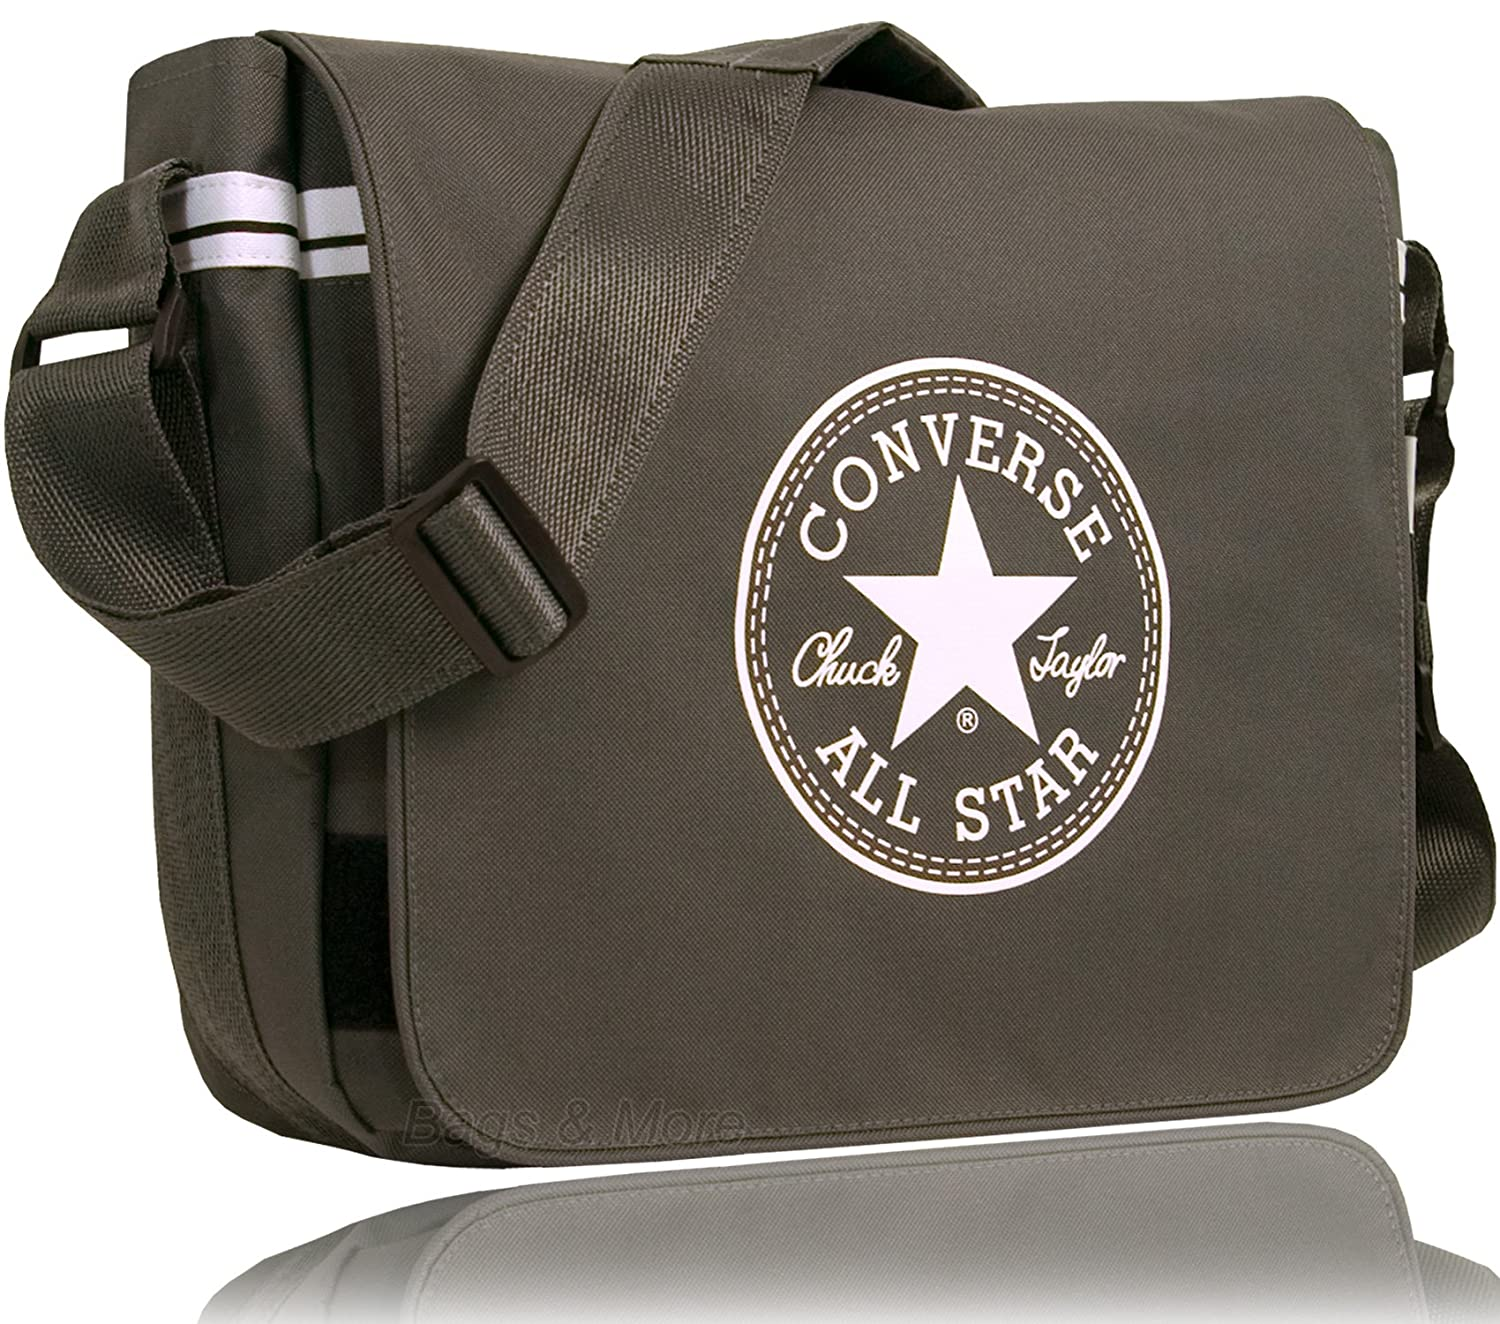 converse bags online